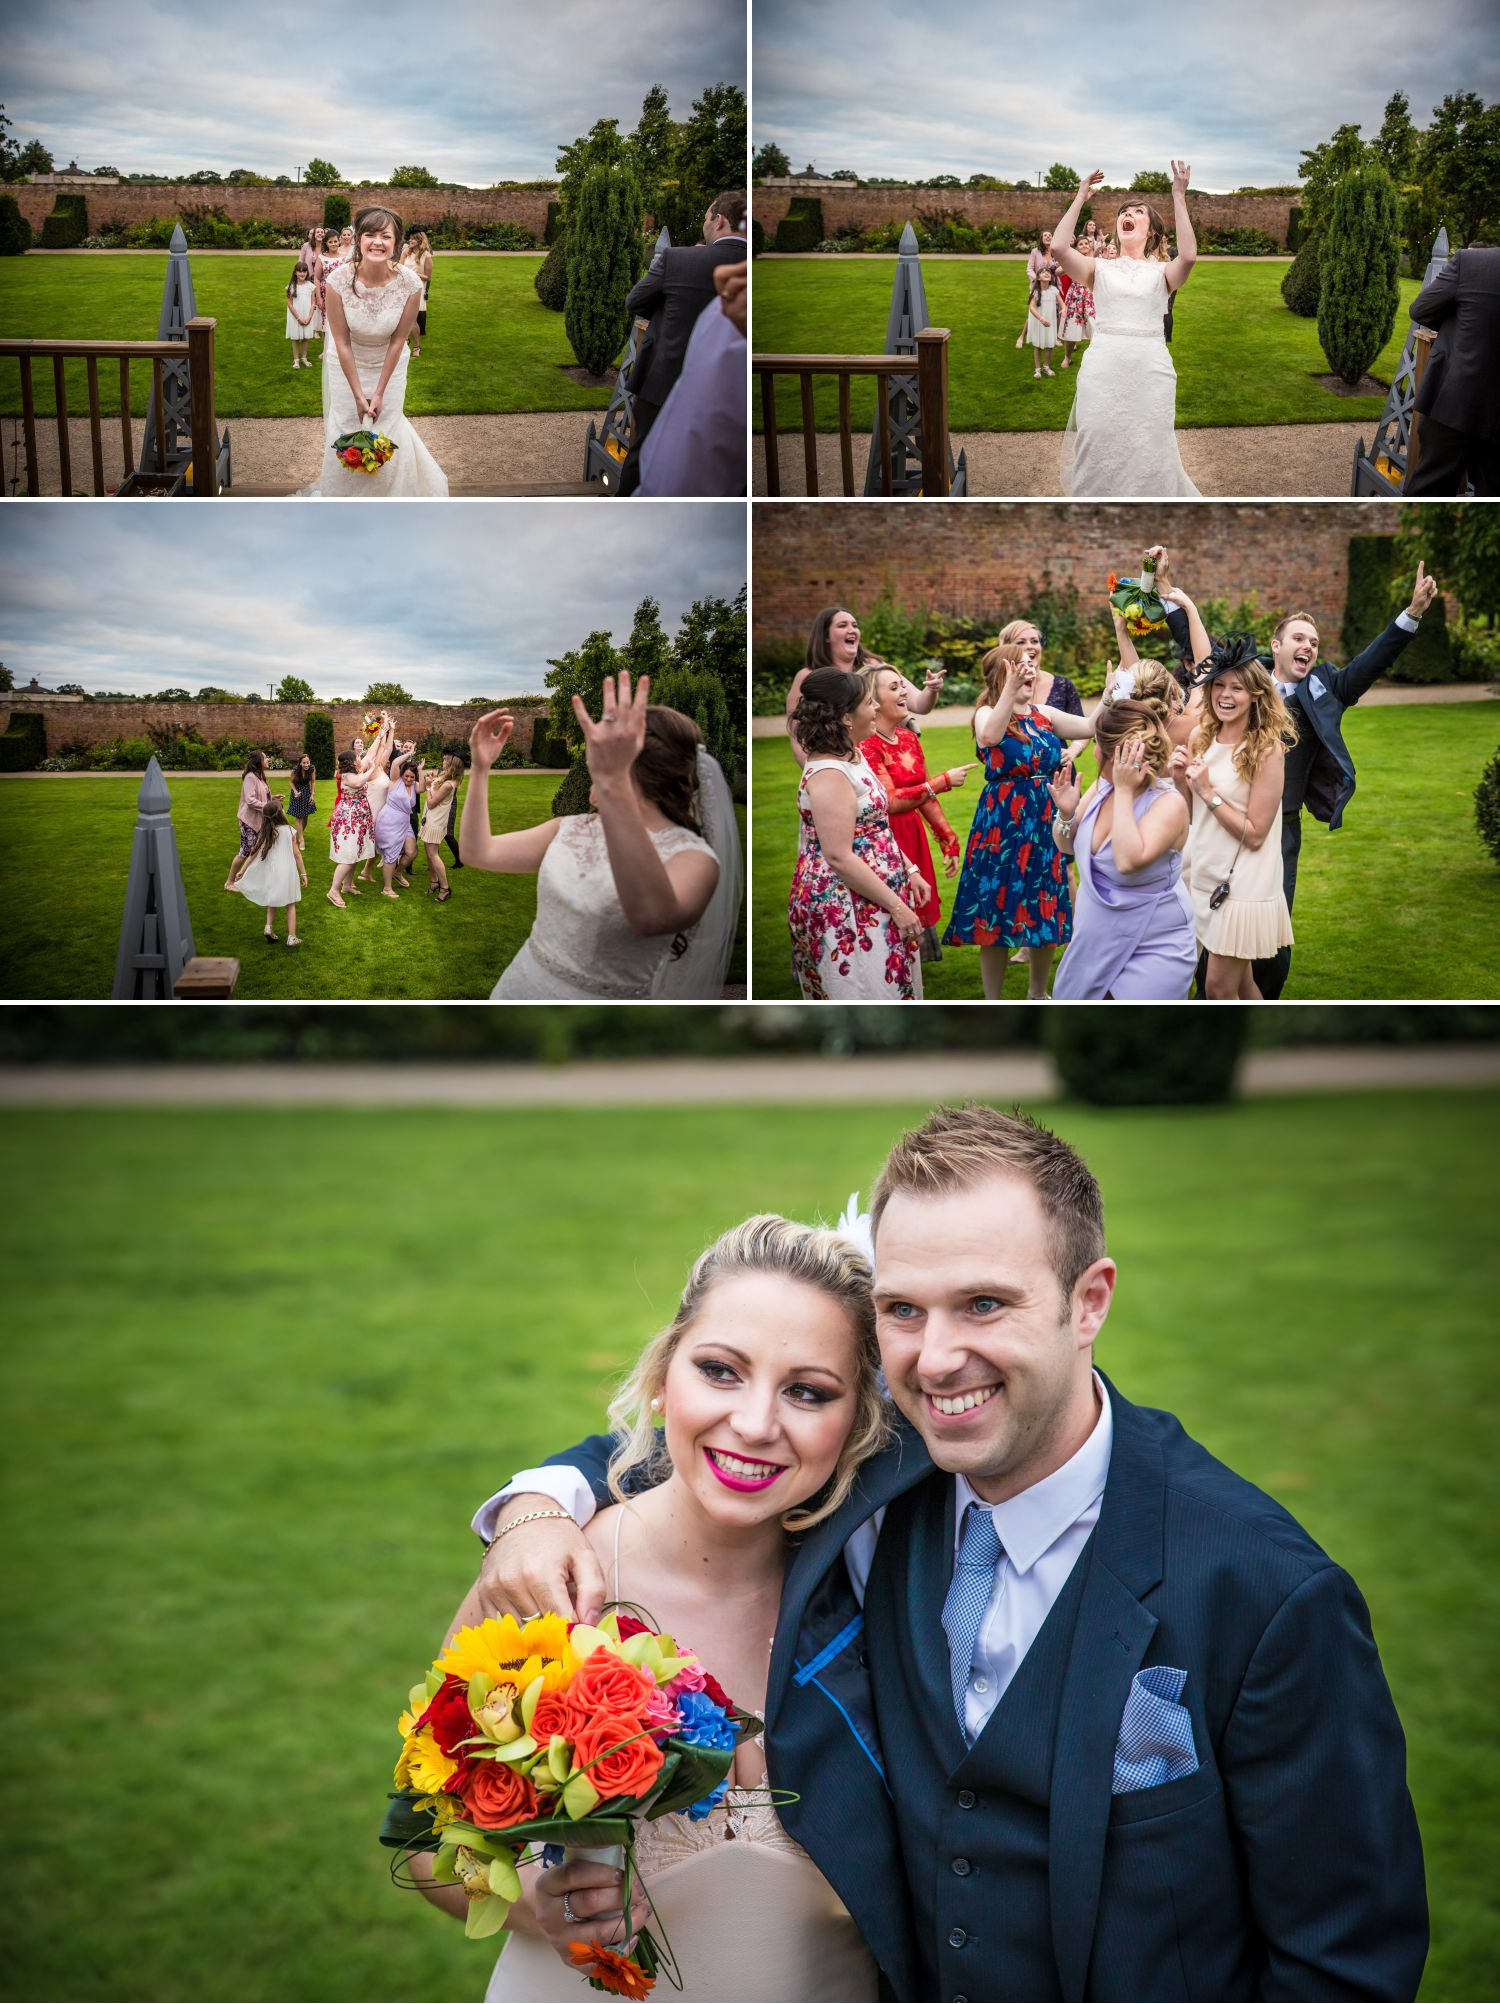 Flower toss at wedding venue in Cheshire Combermere Abbey